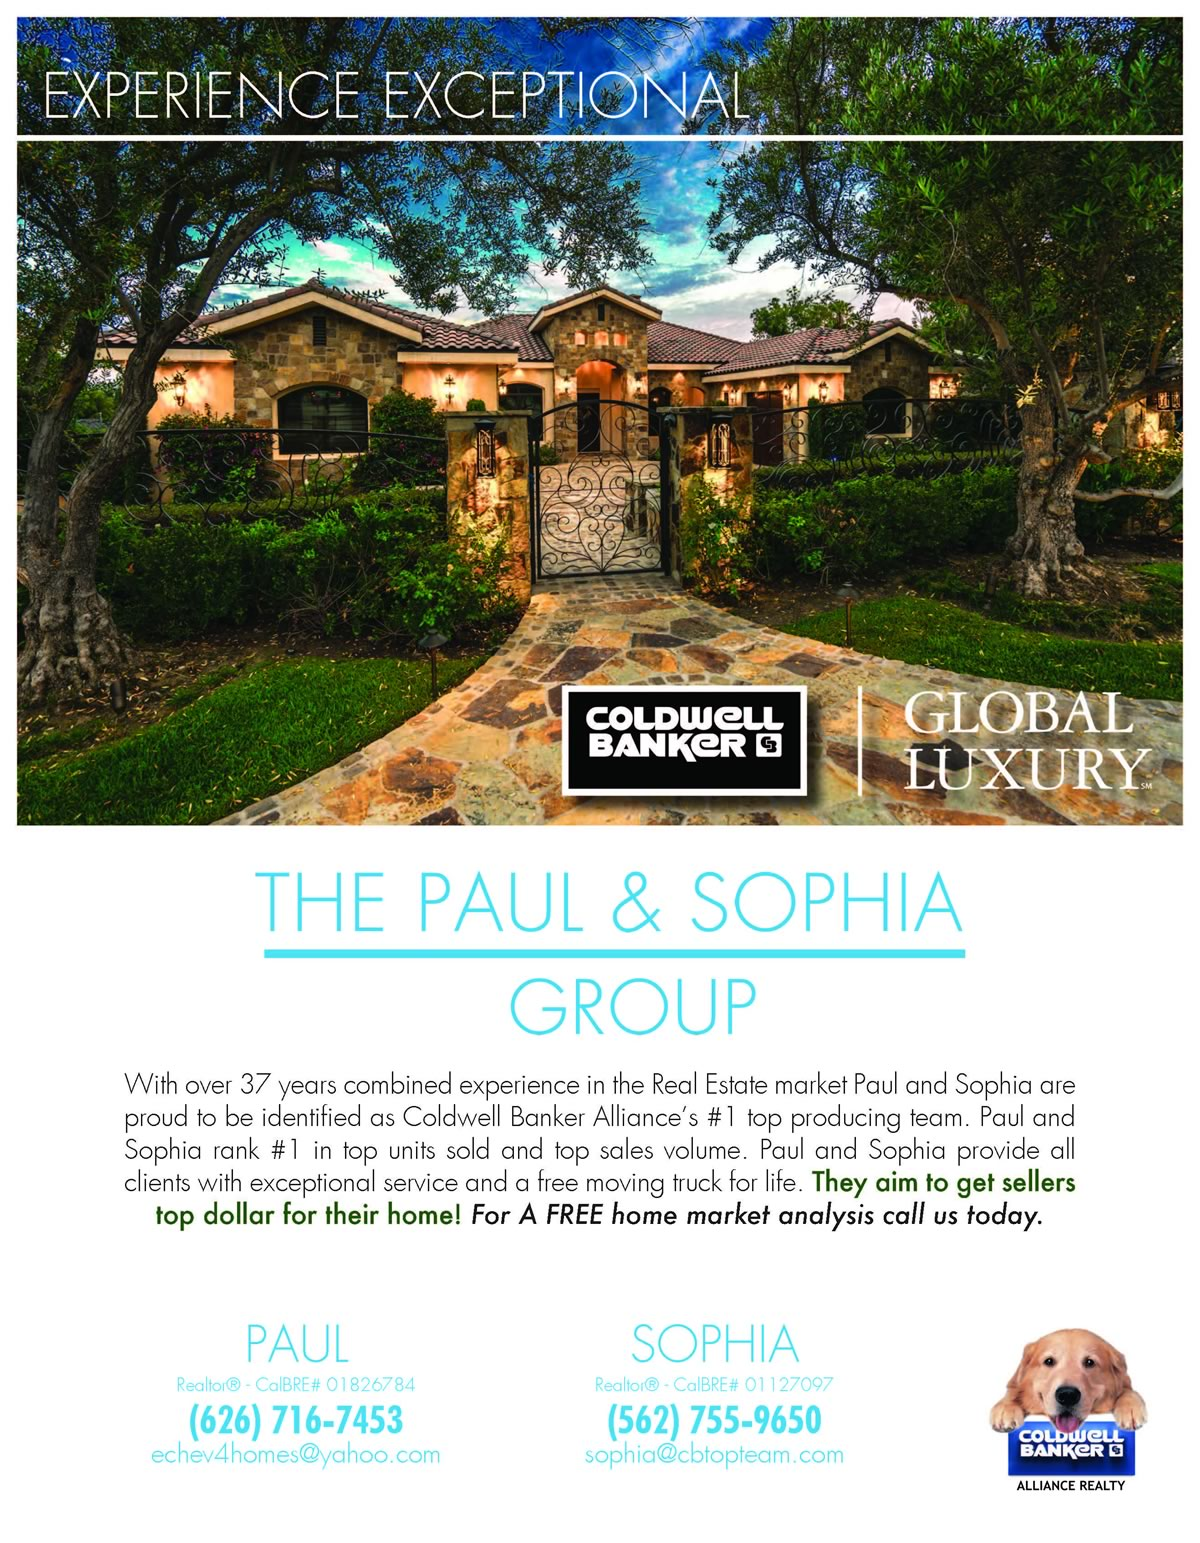 Realtors Paul and Sophia